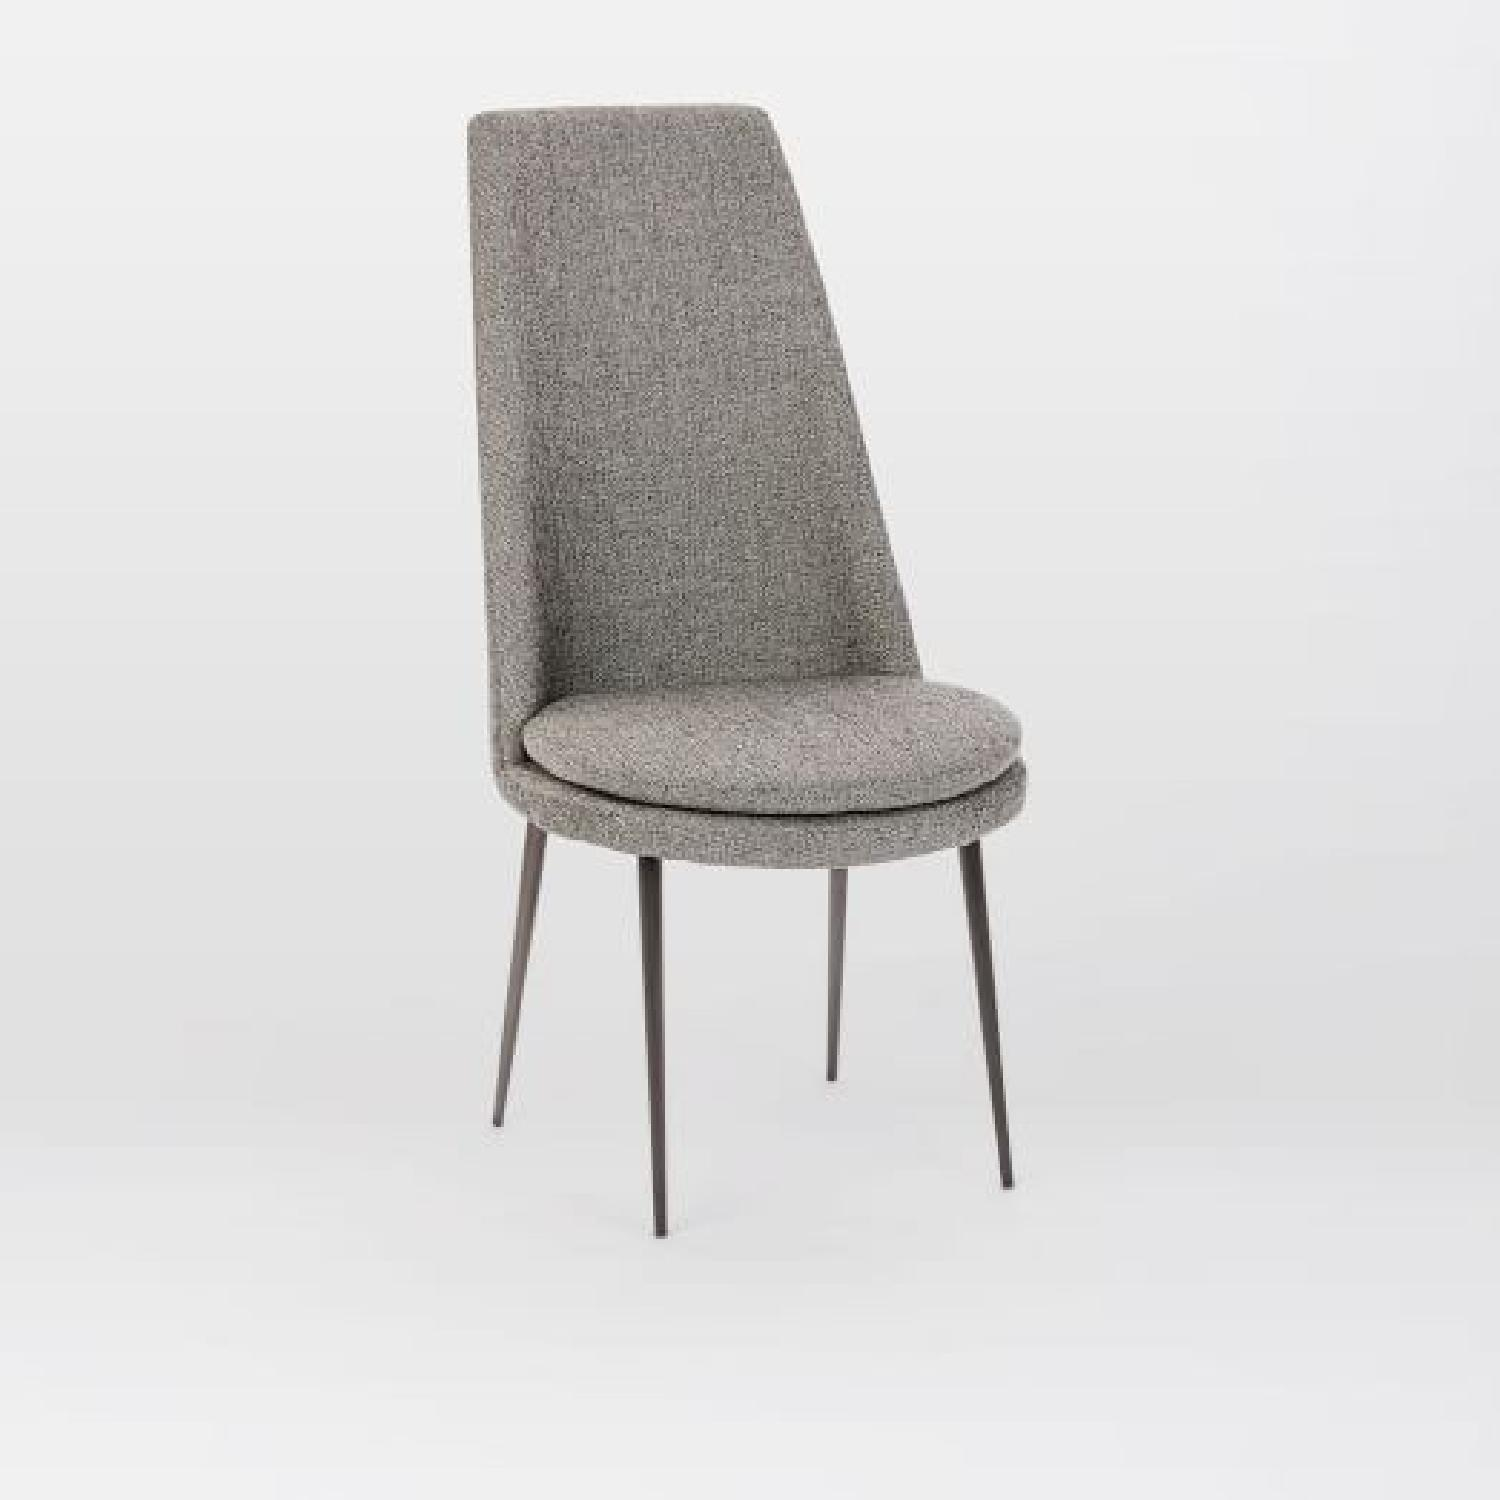 West Elm Finley High-Back Upholstered Dining Chair-1